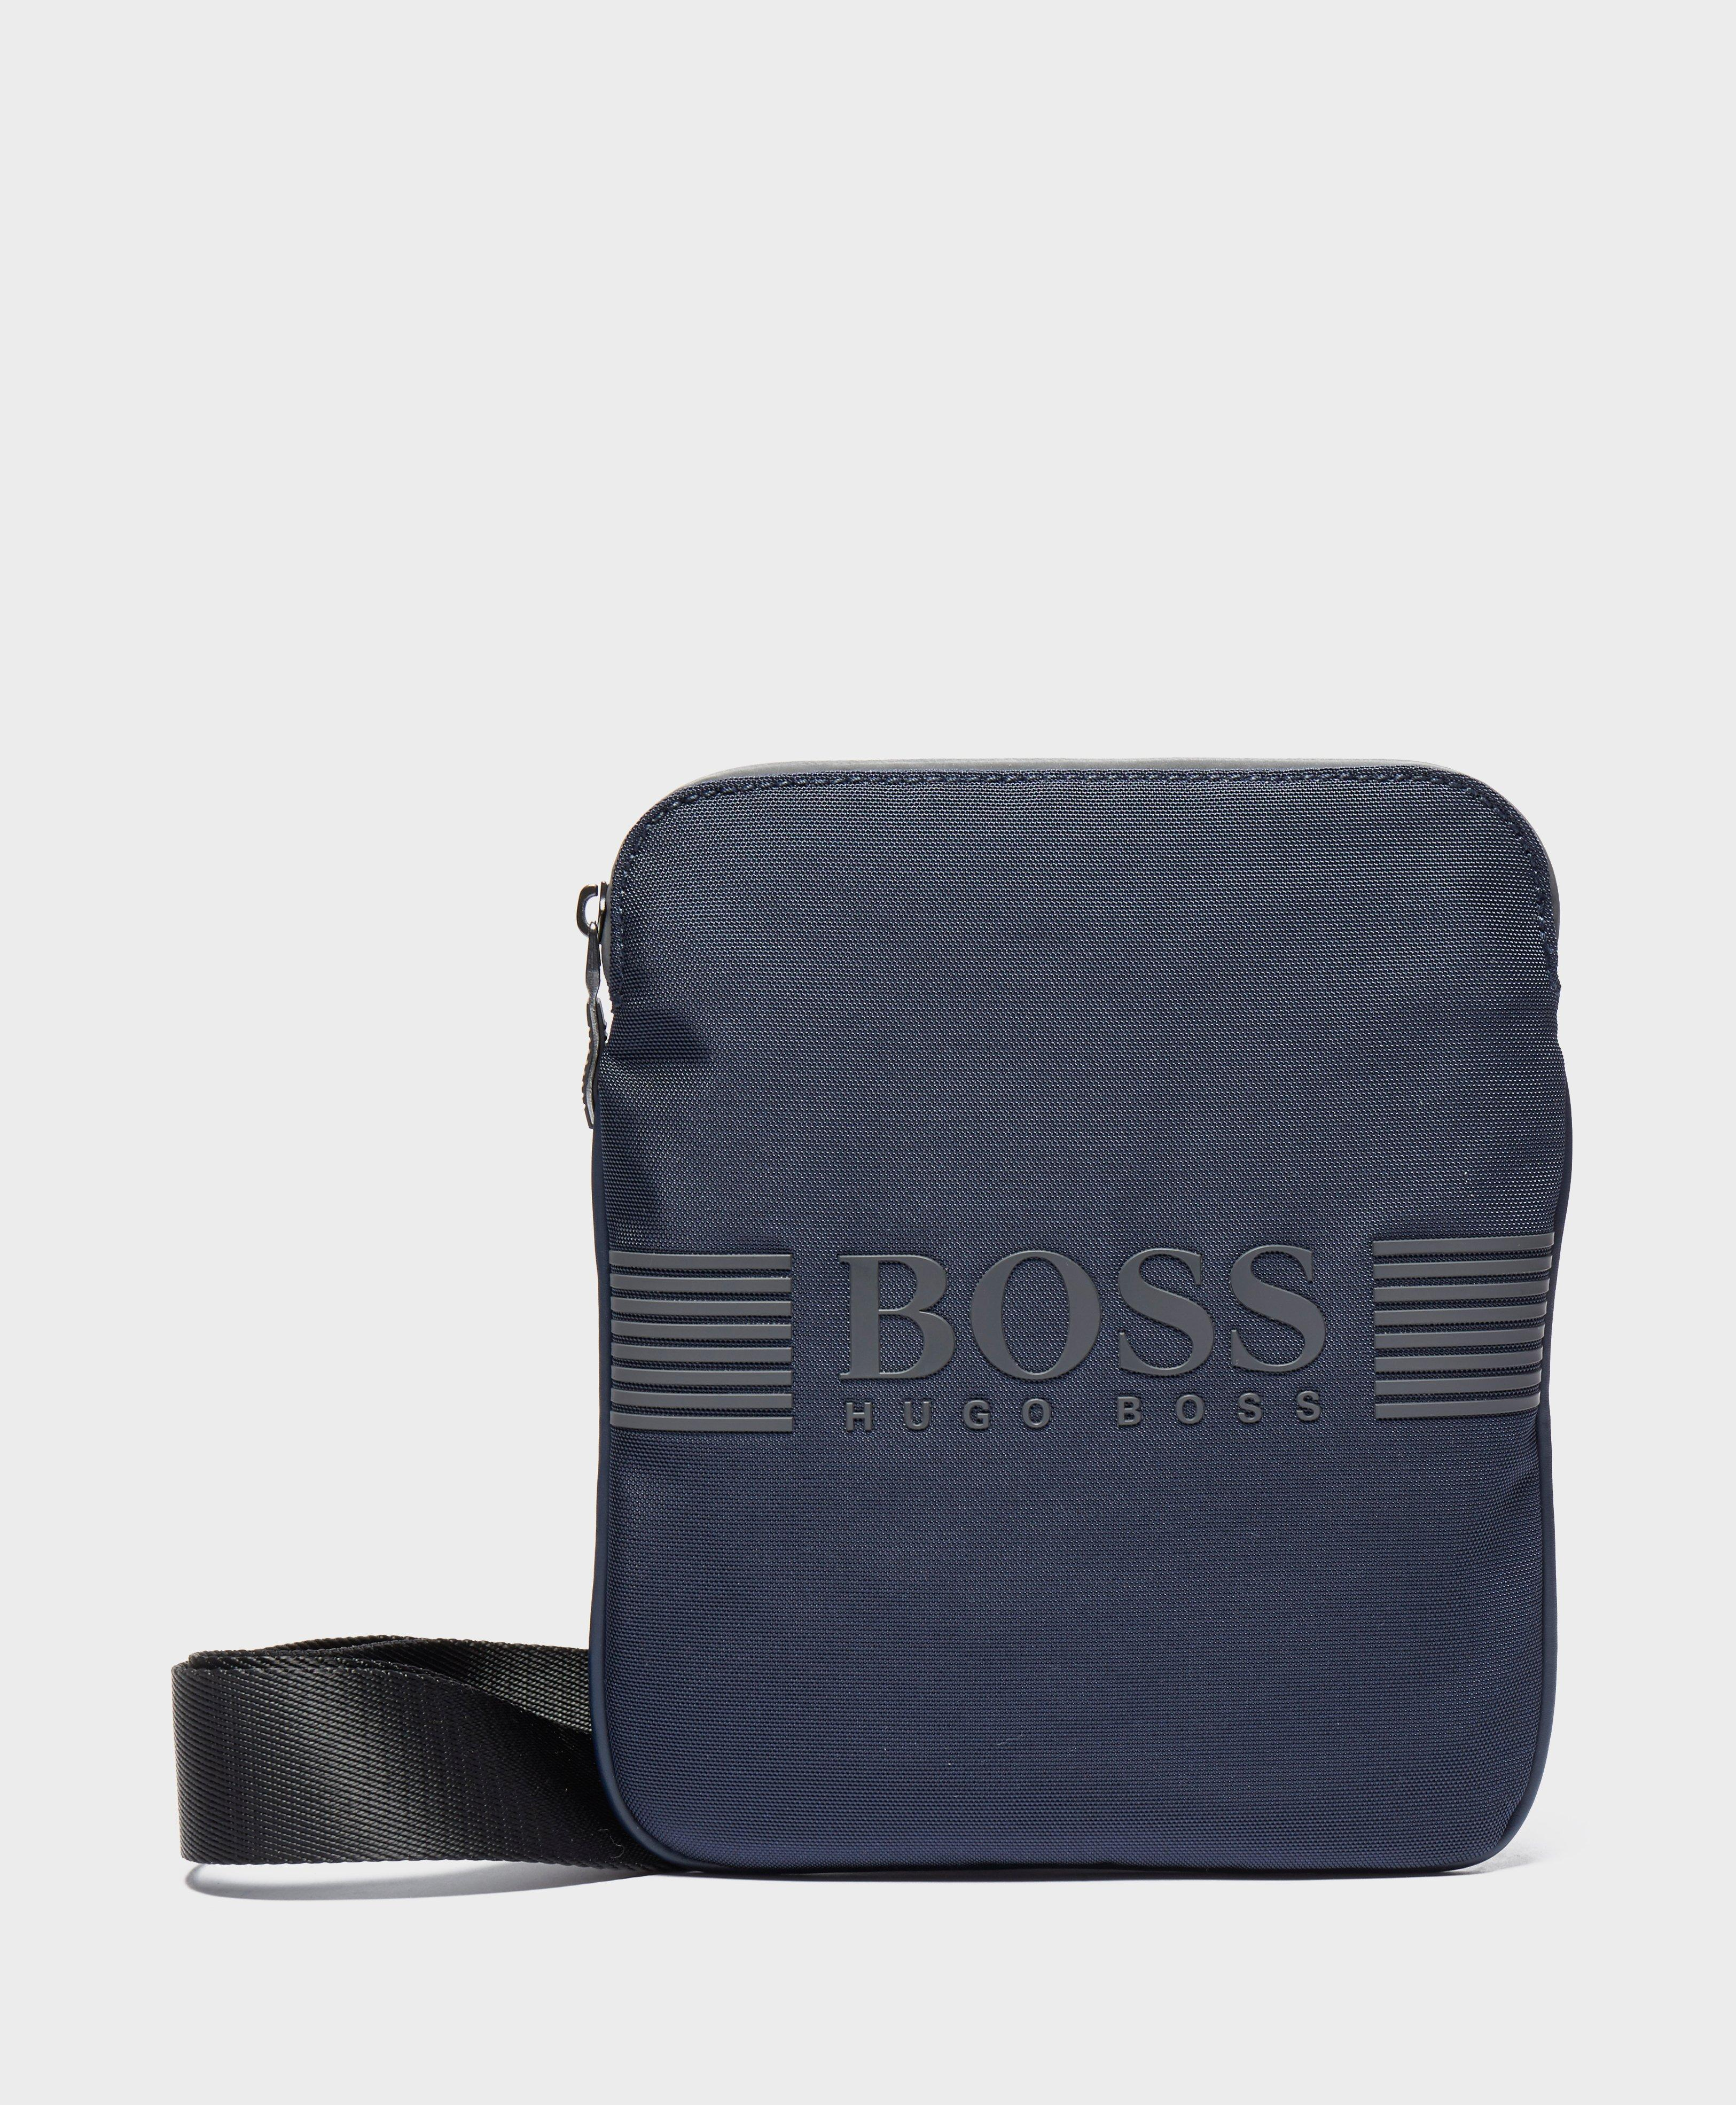 a6a87a1004a2 Boss Pixel Small Item Pouch Bag in Blue for Men - Lyst